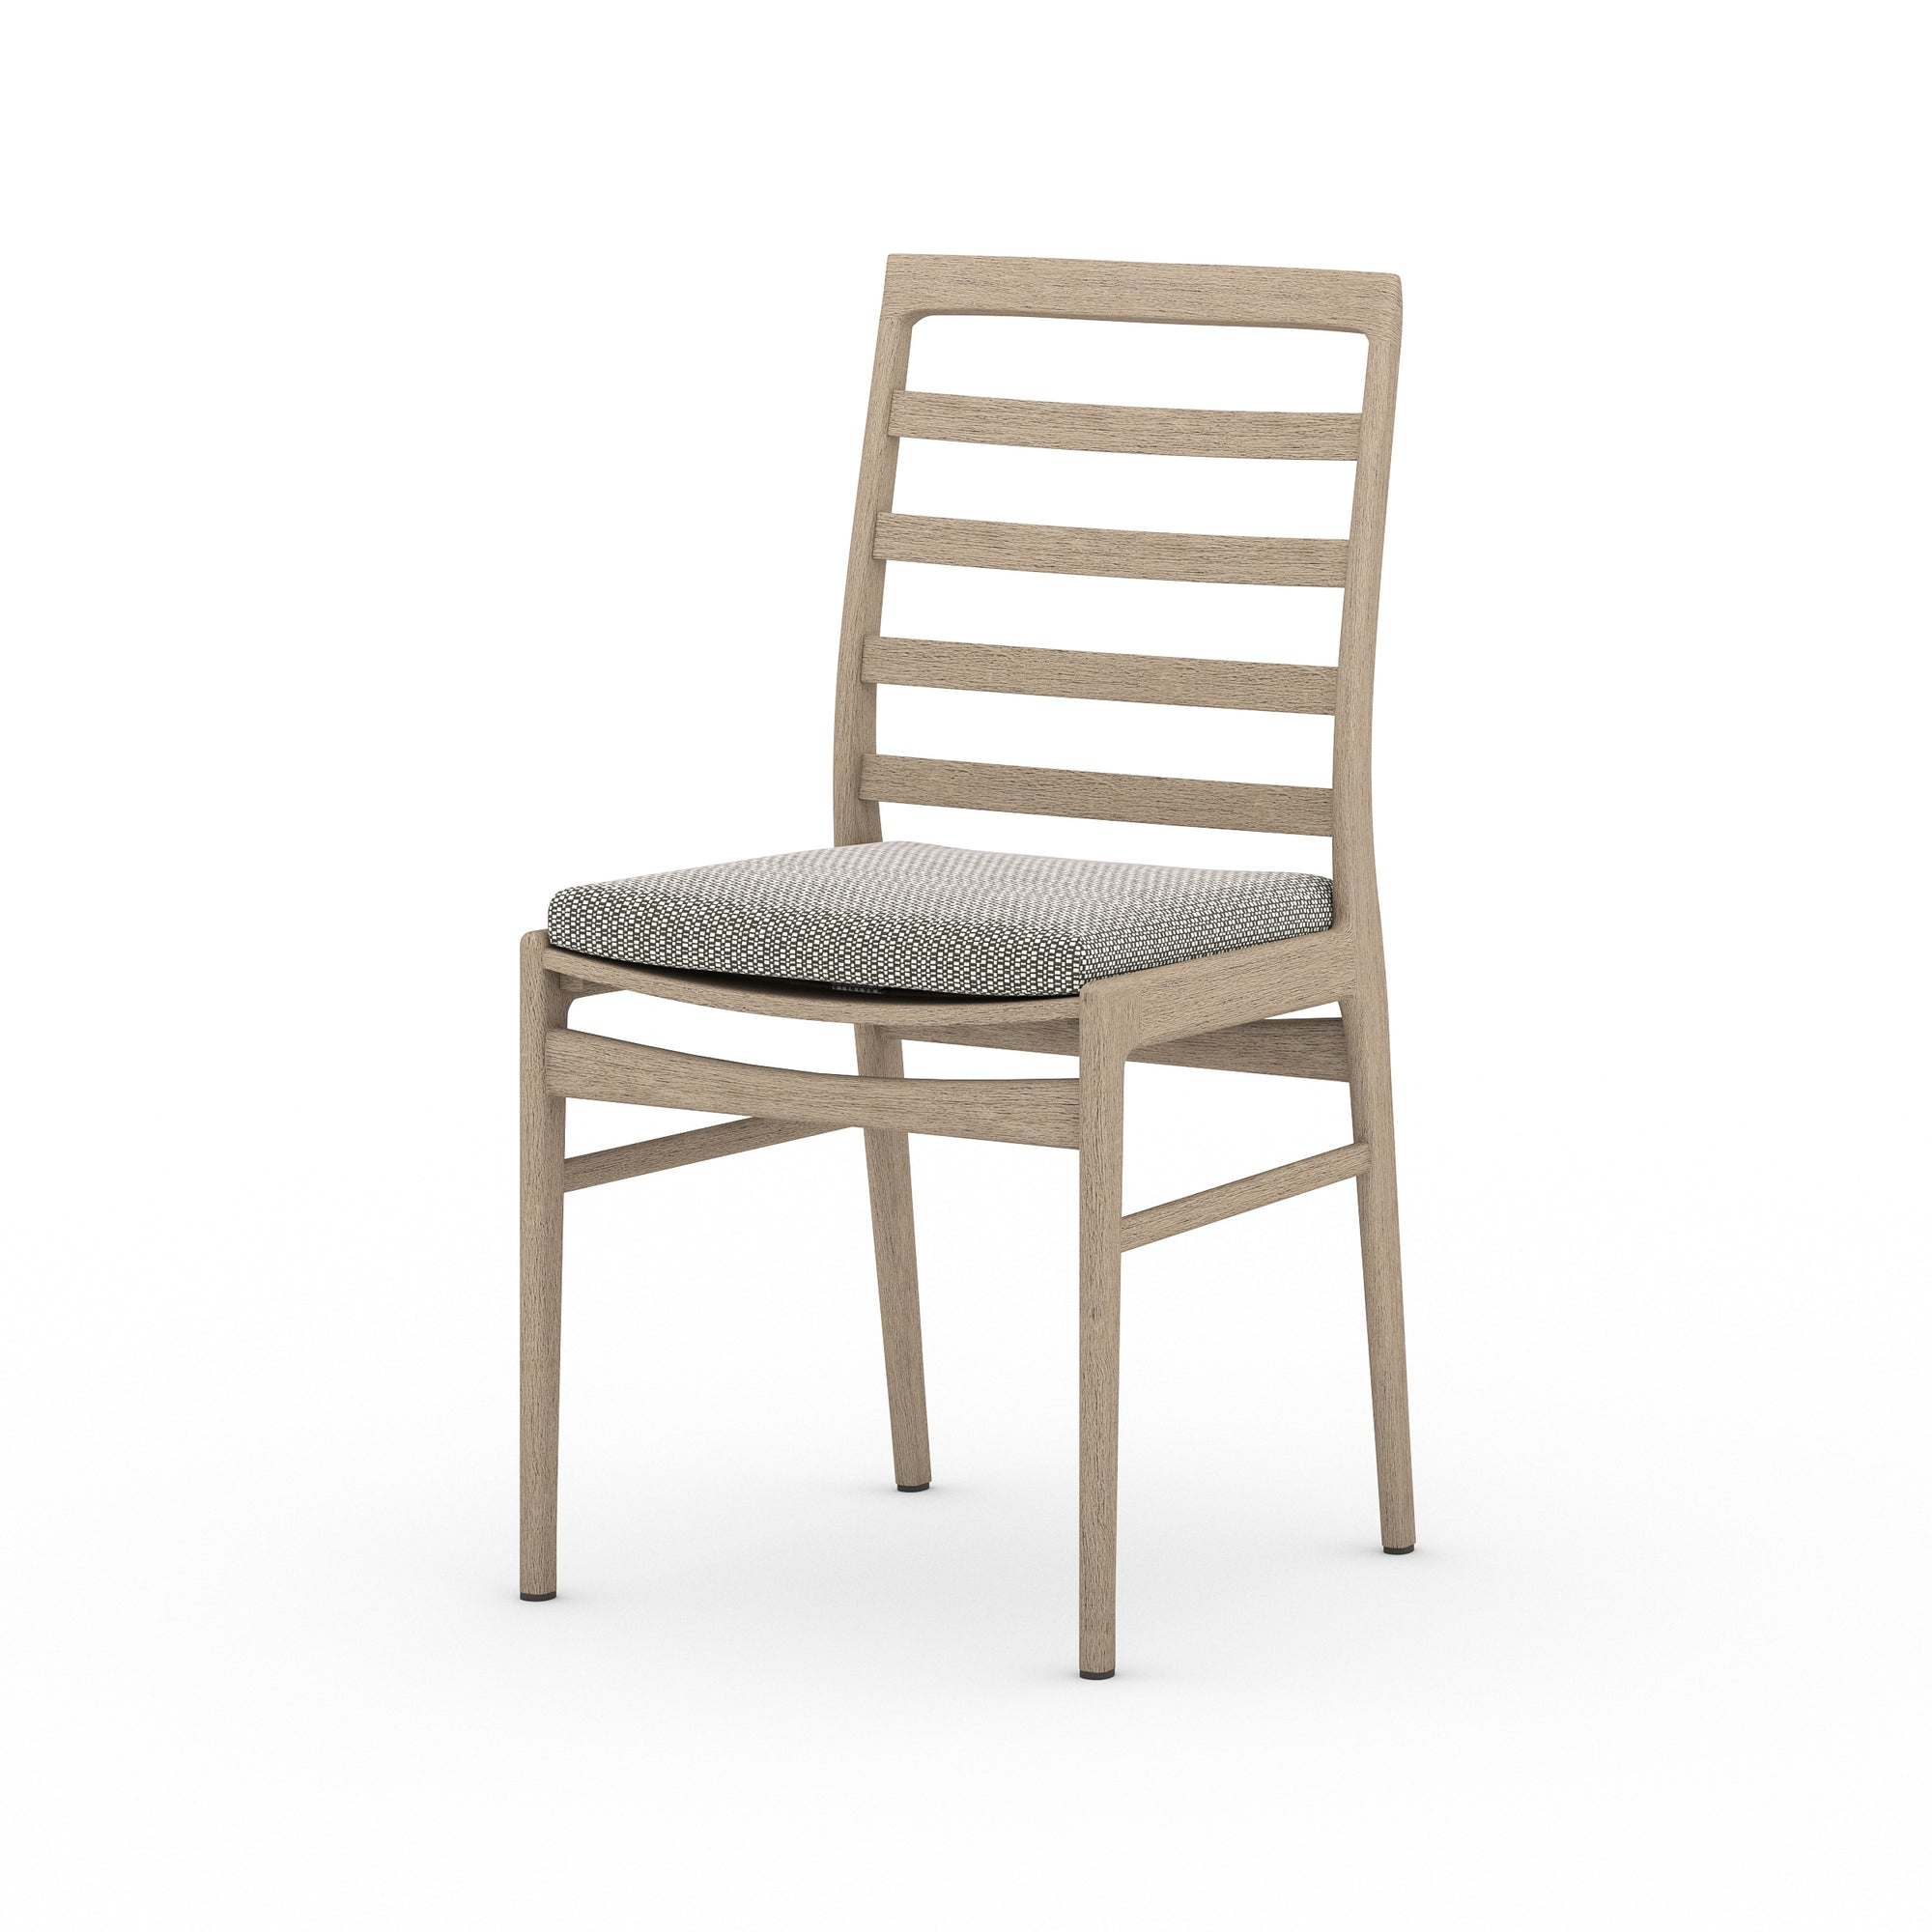 Linnet Outdoor Dining Chair - Brown/Ash